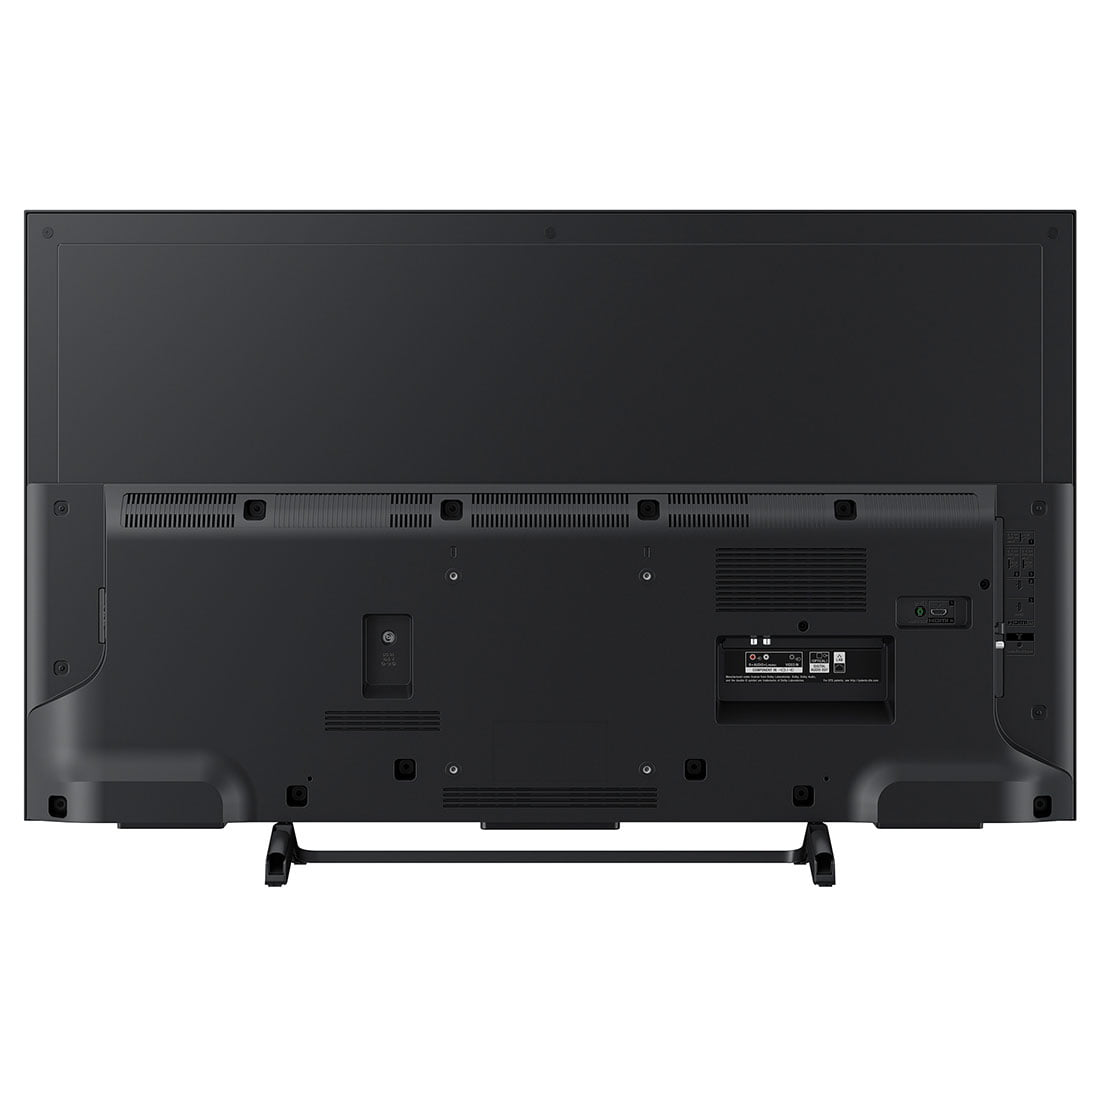 sony kd 49x720e 49 4k hdr ultra hd tv. Black Bedroom Furniture Sets. Home Design Ideas